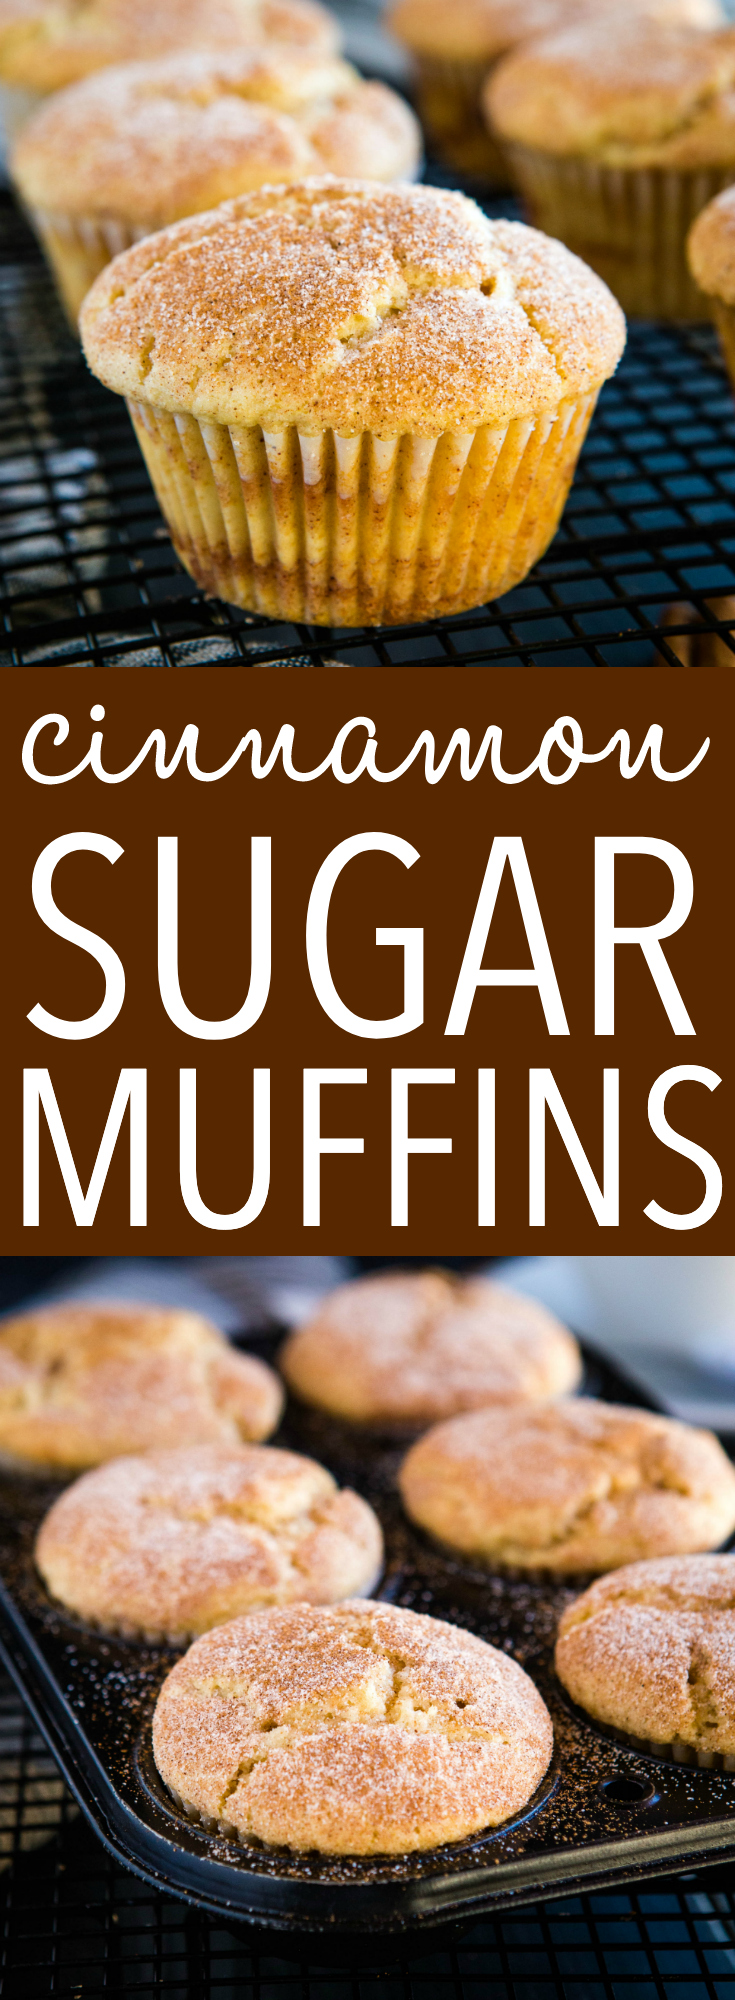 These Cinnamon Sugar Muffins are the perfect sweet treat for coffee break, breakfast or brunch. A soft tender muffin with swirls of cinnamon sugar! Recipe from thebusybaker.ca! #muffins #cinnamon #sugar #sweet #breakfast #brunch #snack #coffee #coffeebreak #coffeeshop #coffeecake #cinnamonsugar #treat via @busybakerblog